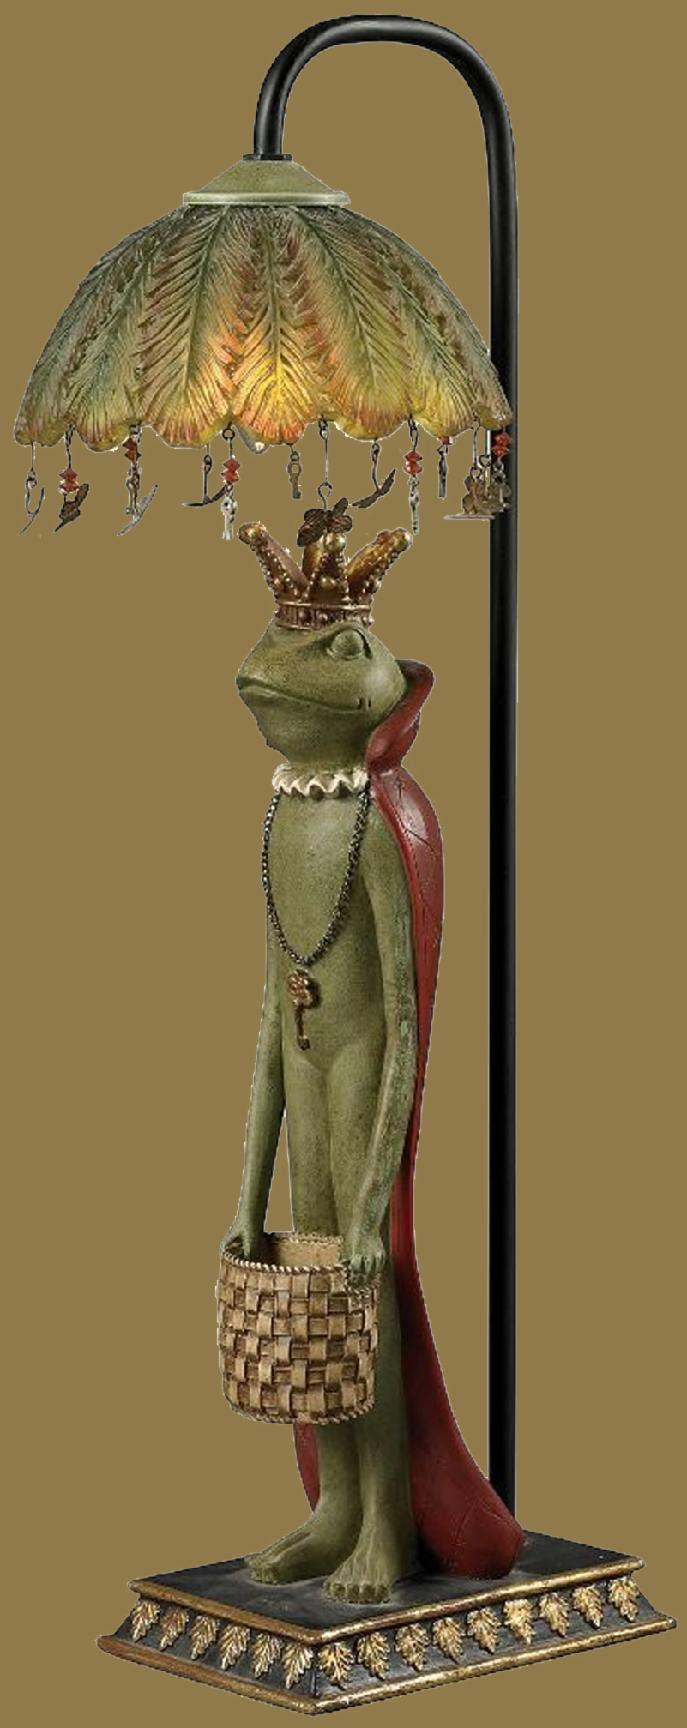 King Frog with Basket Lamp